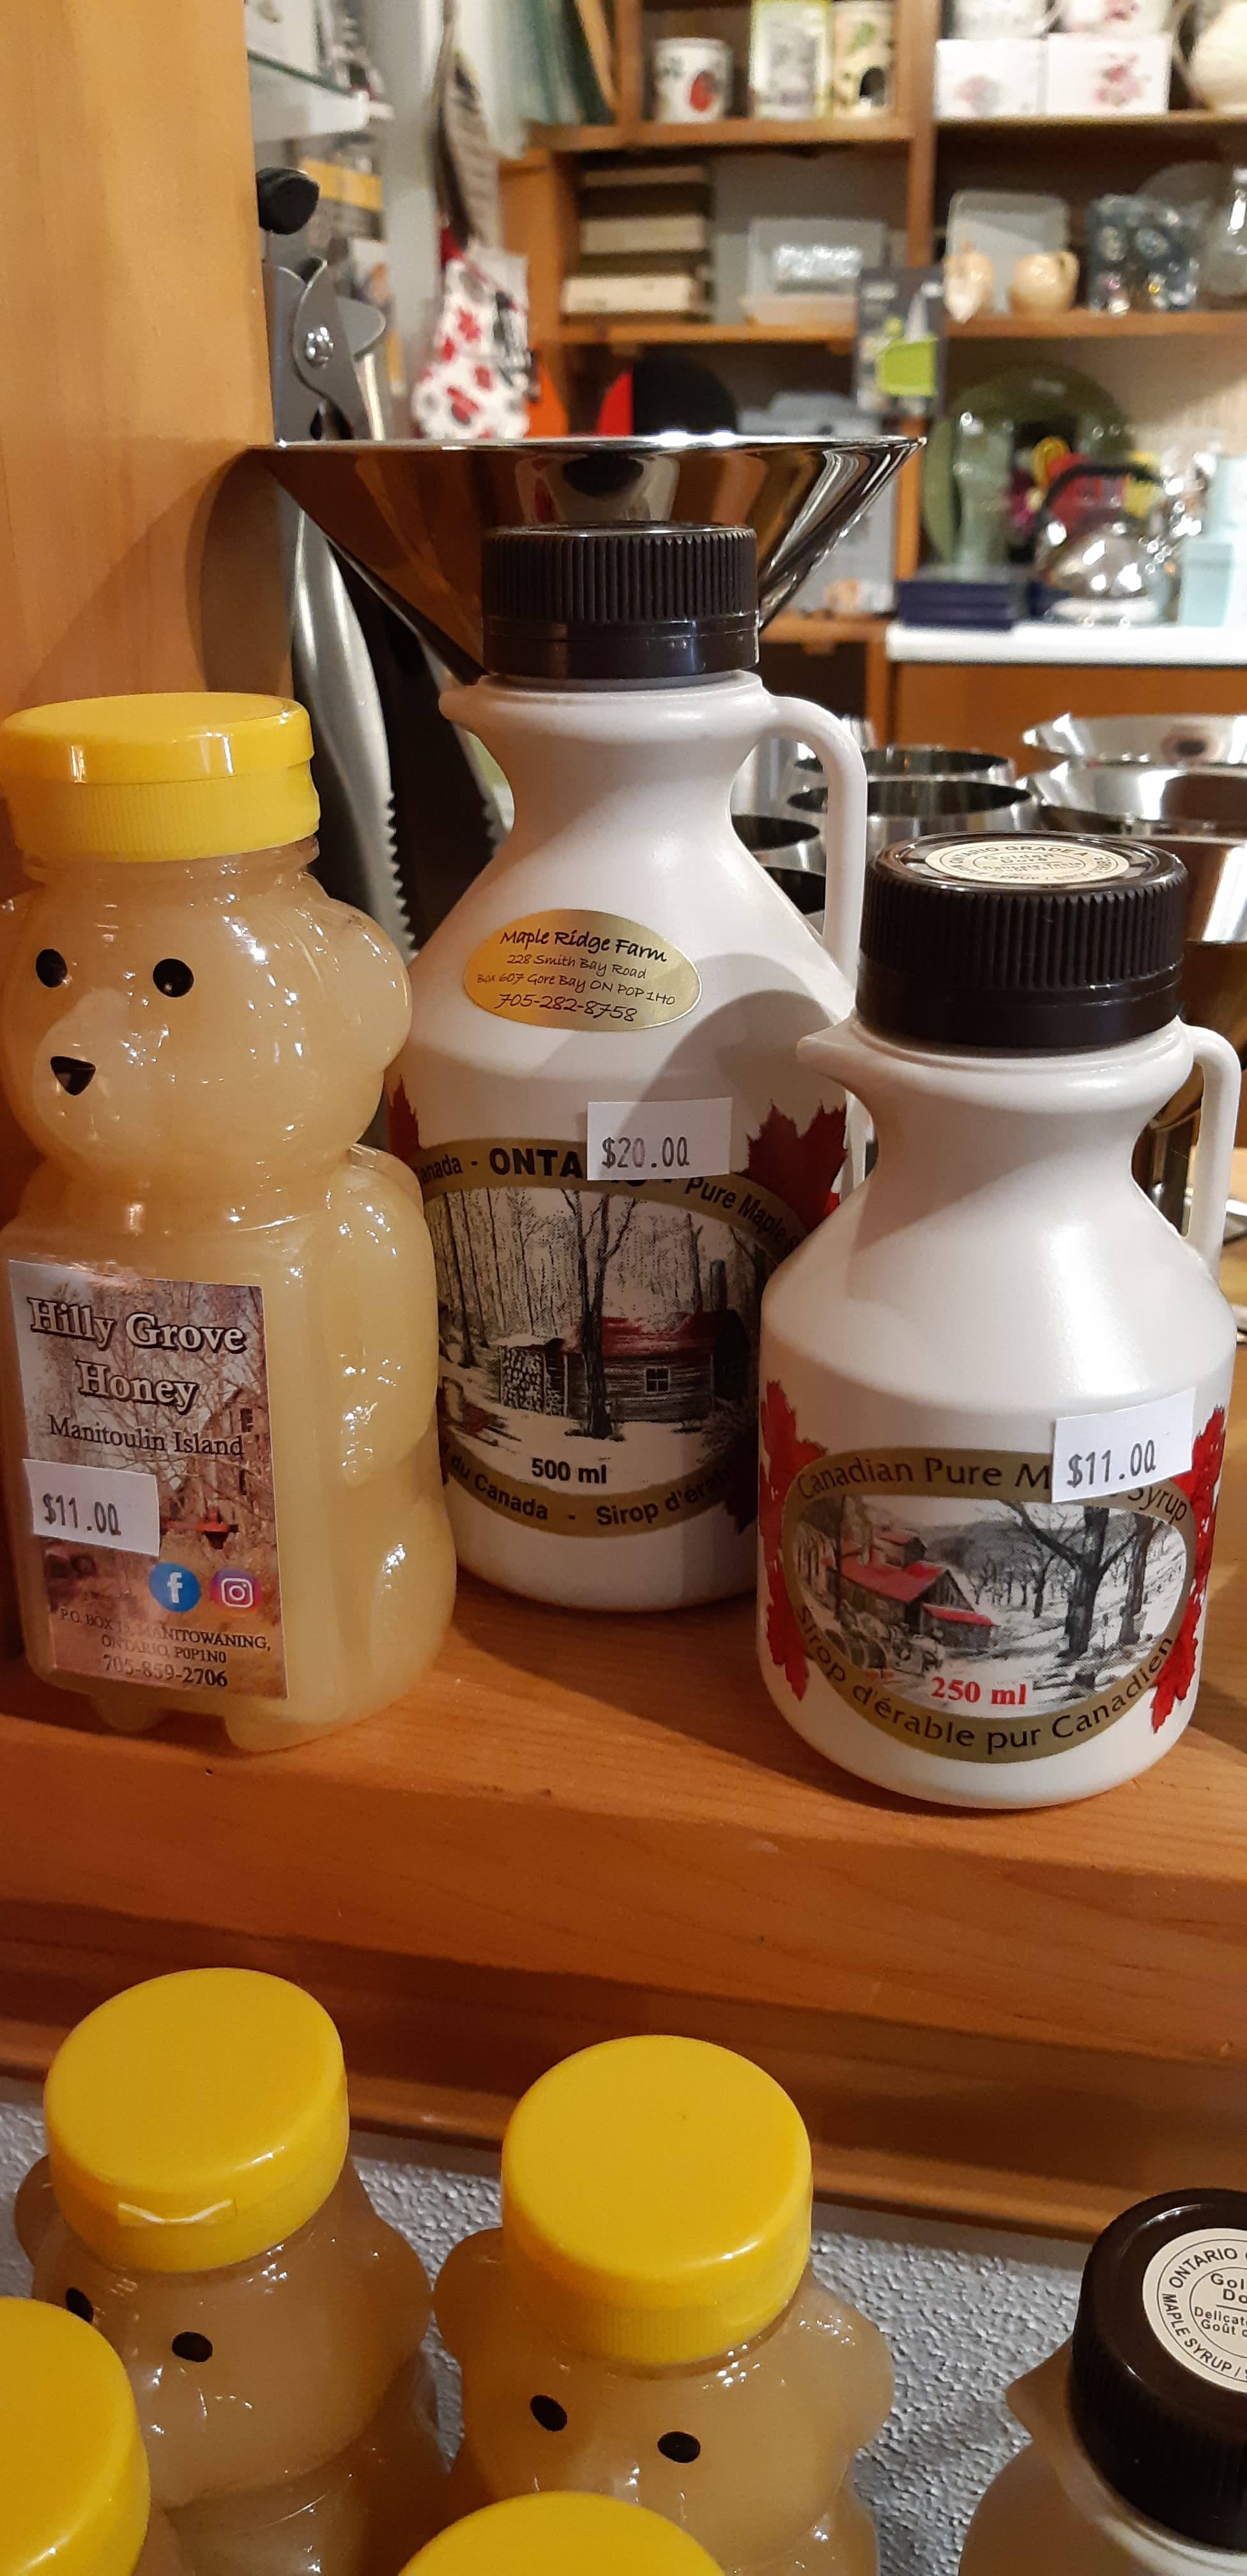 honey and maple syrup Manitoulin